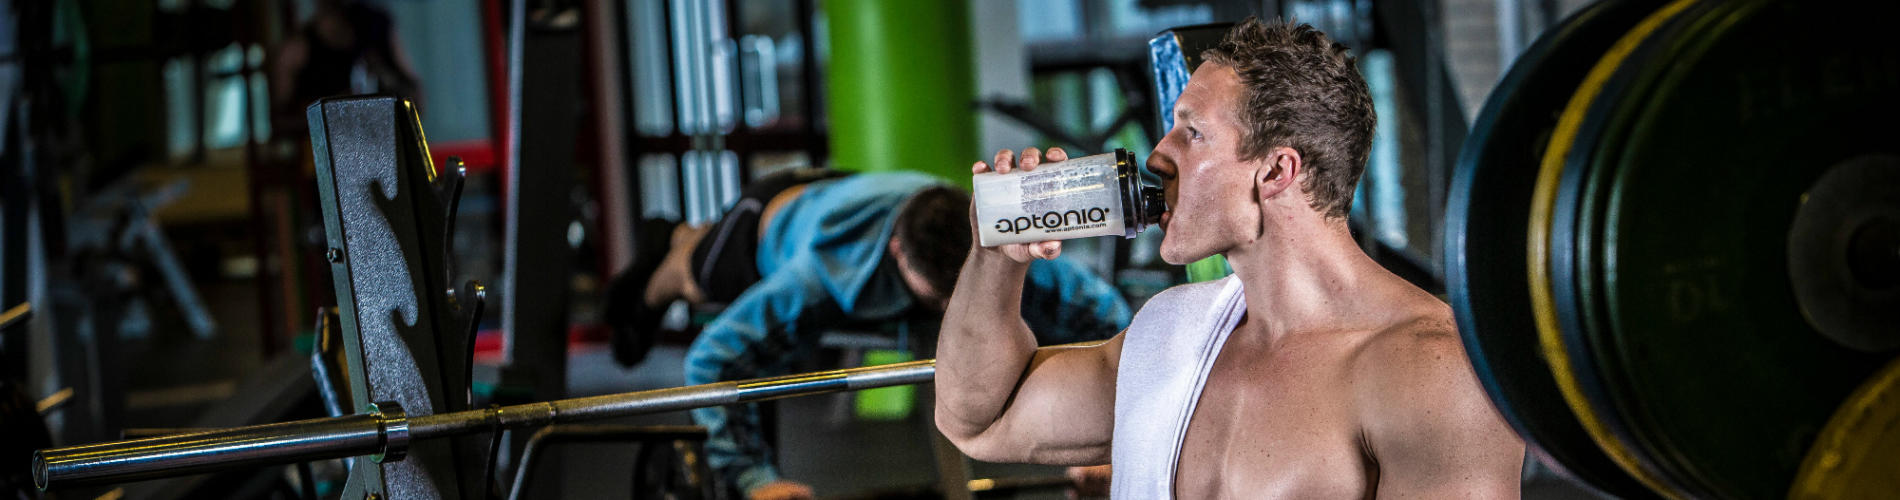 How to Gain Muscle Mass?